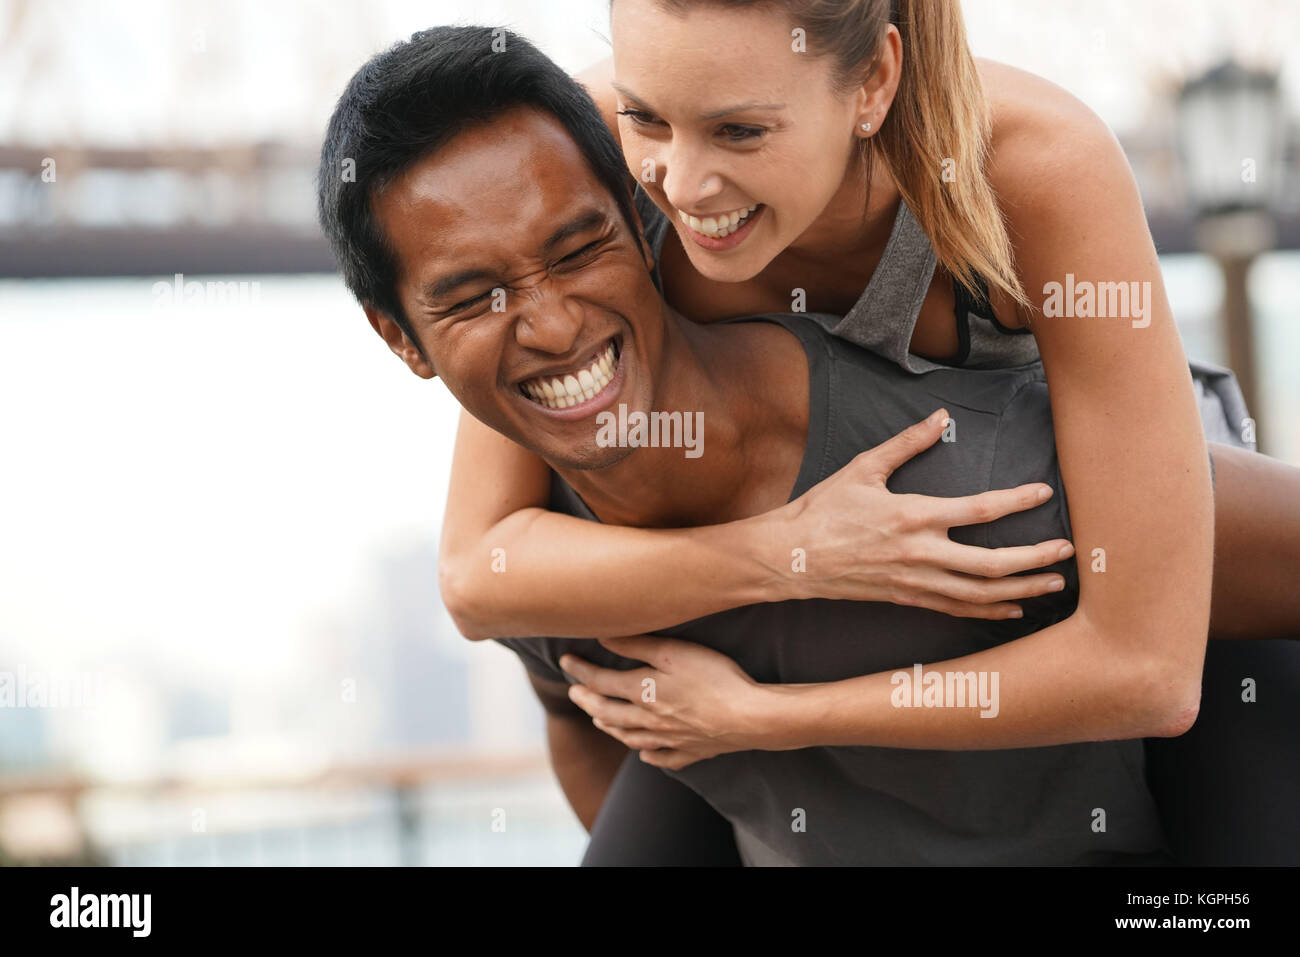 Man giving piggyback ride to girlfriend - Stock Image